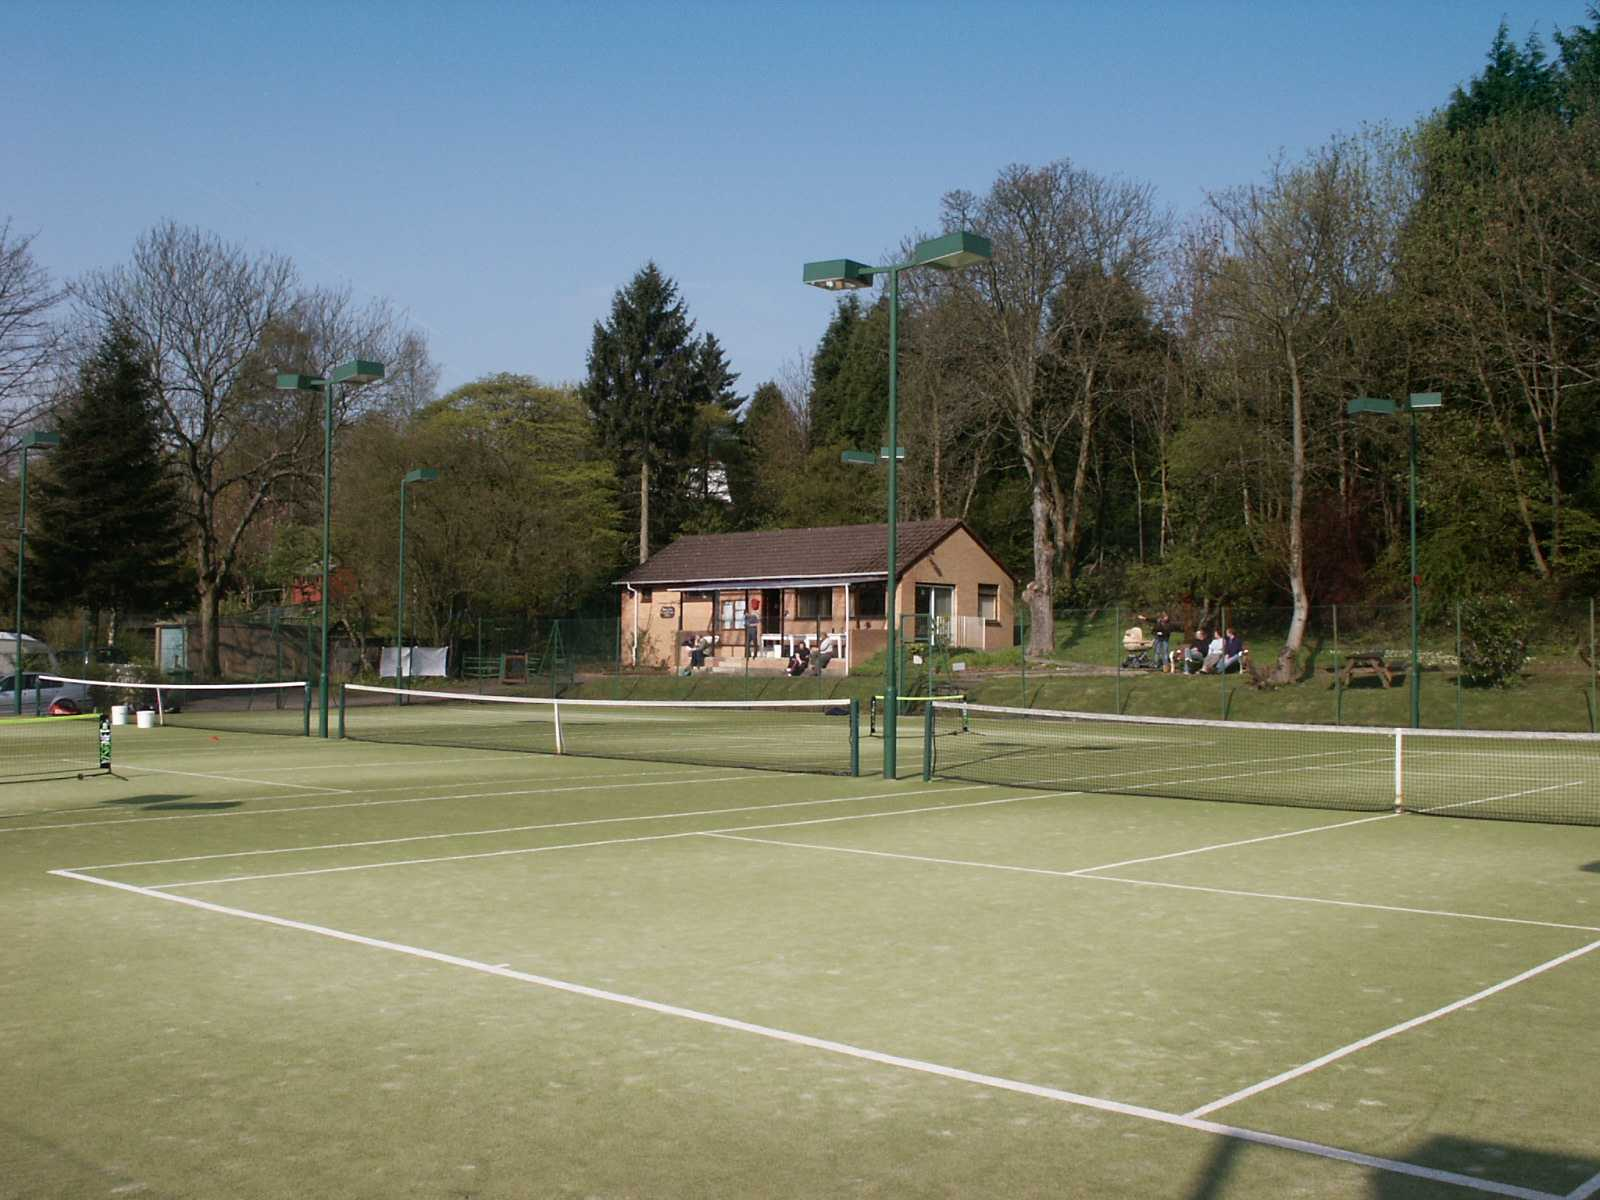 Courts and clubhouse on a sunny day....